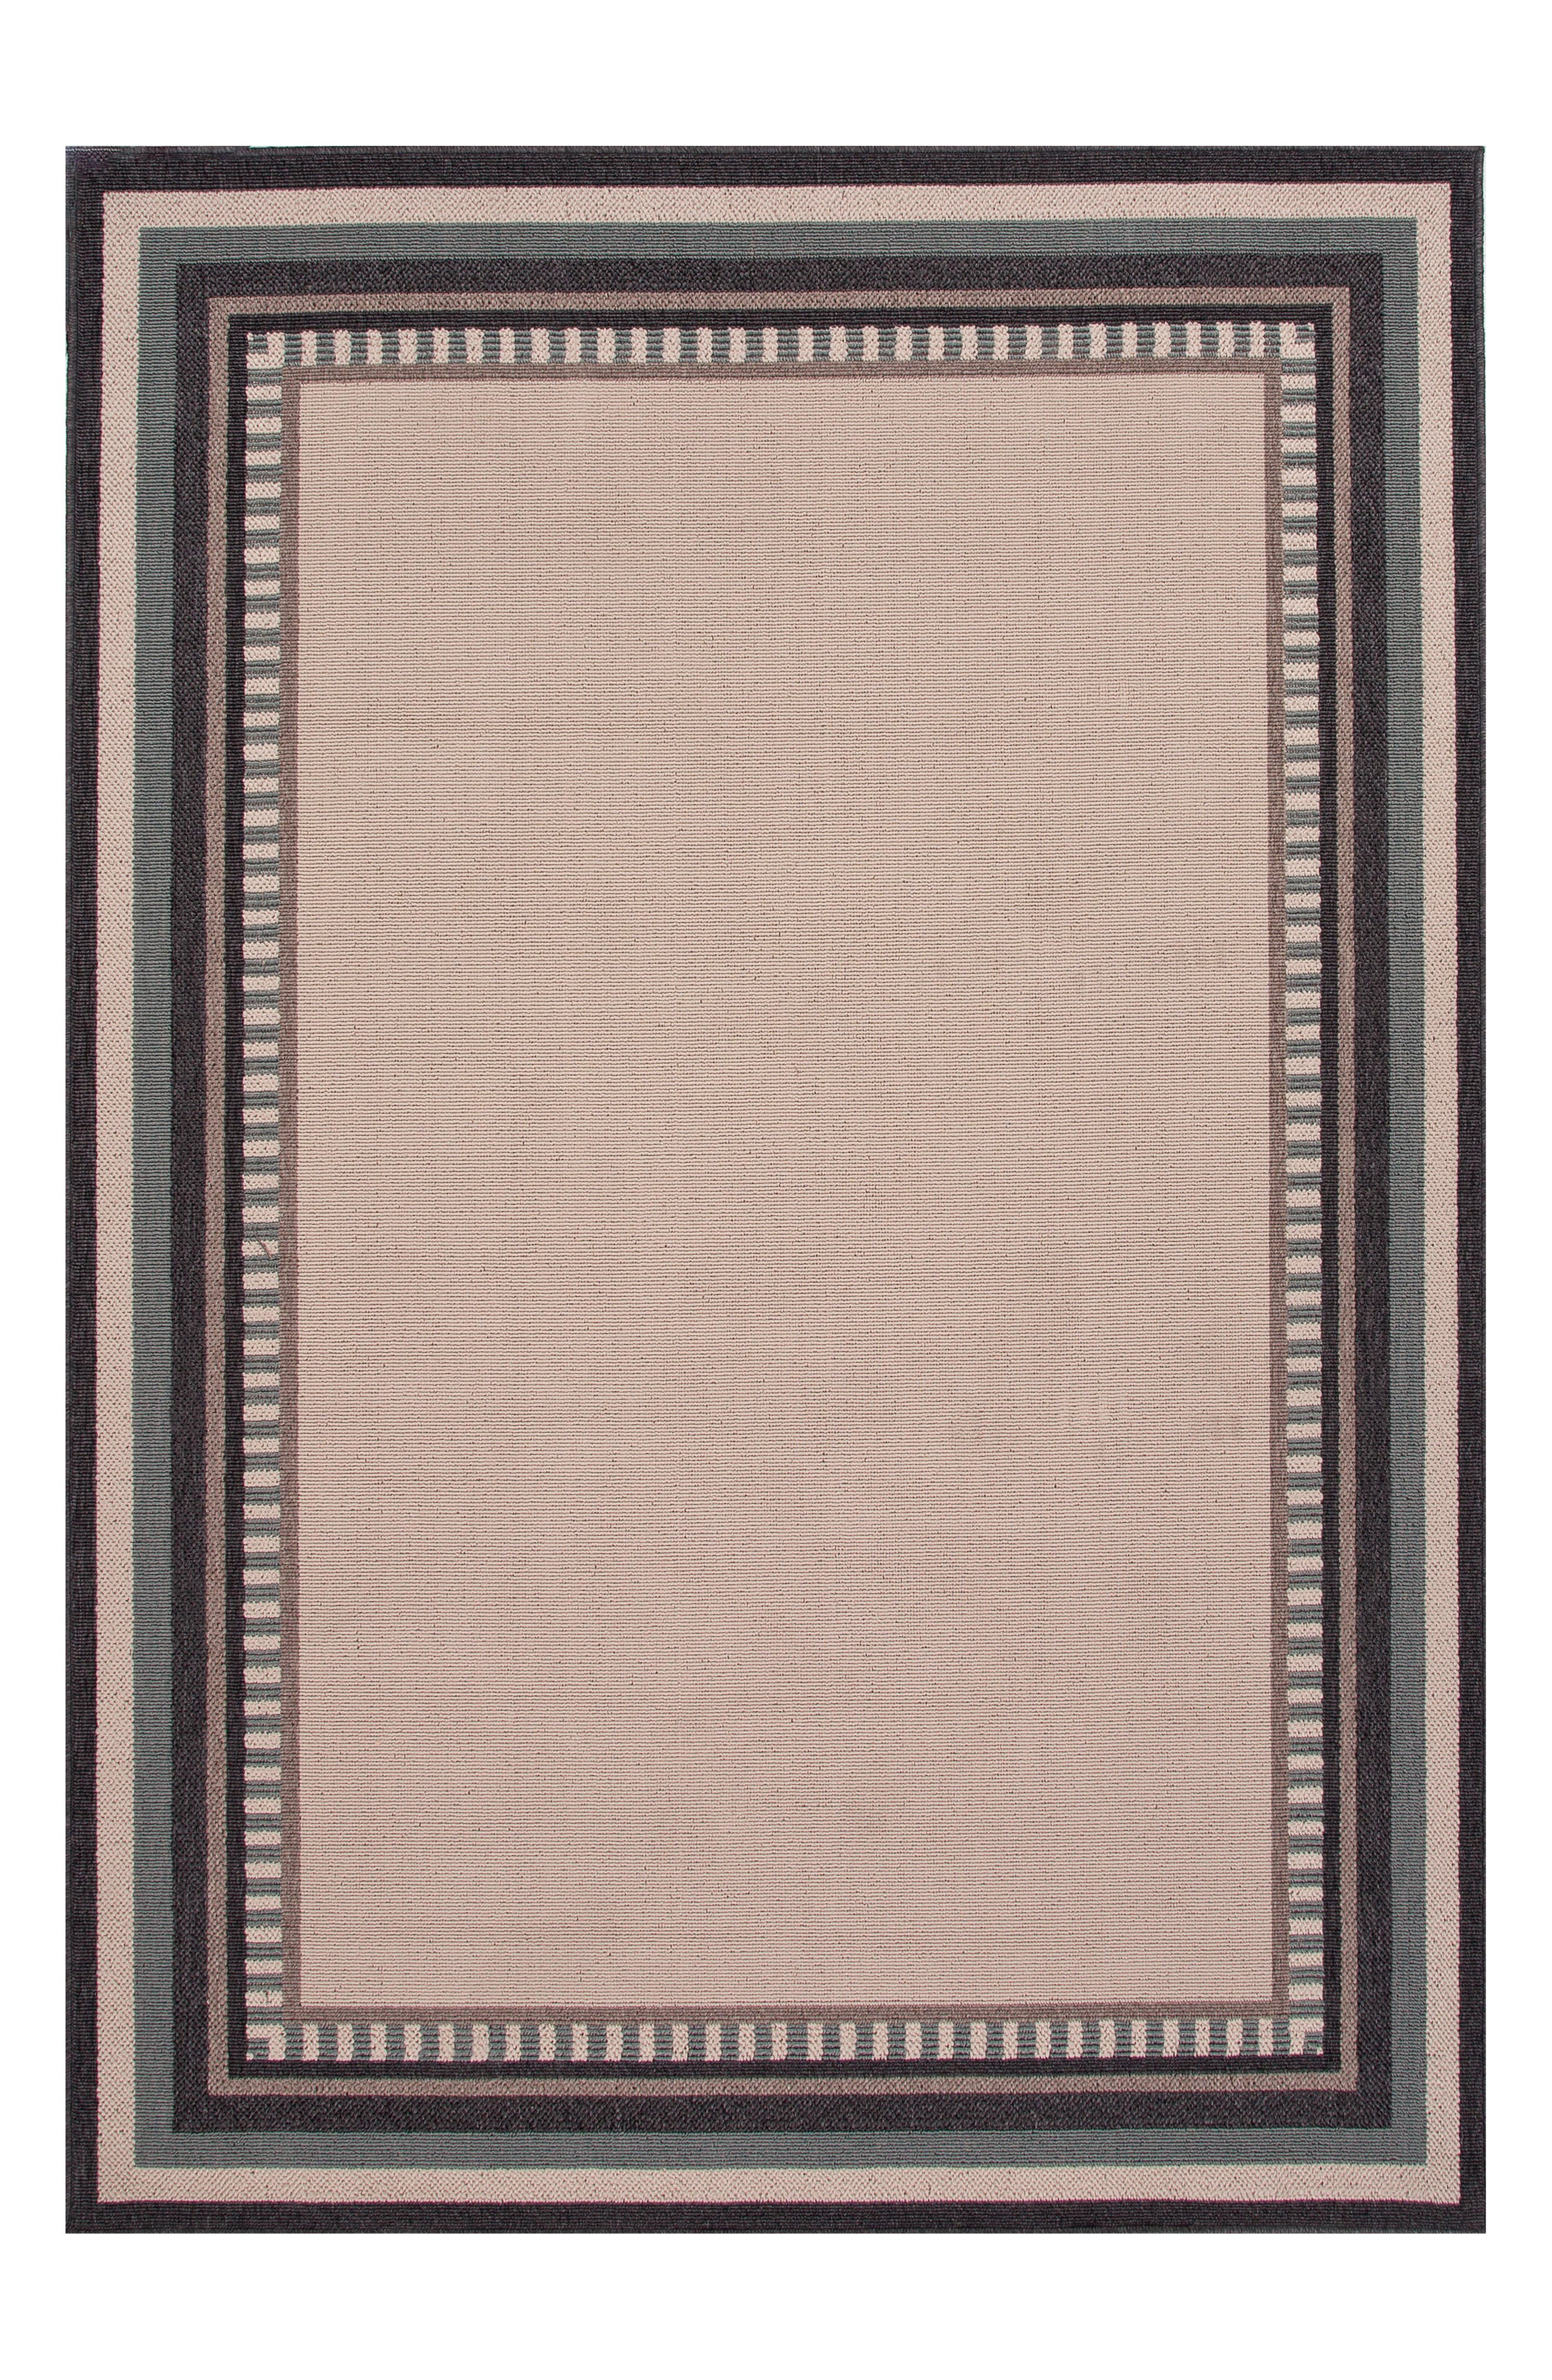 Jaipur Border Monument Indoor/Outdoor Rug